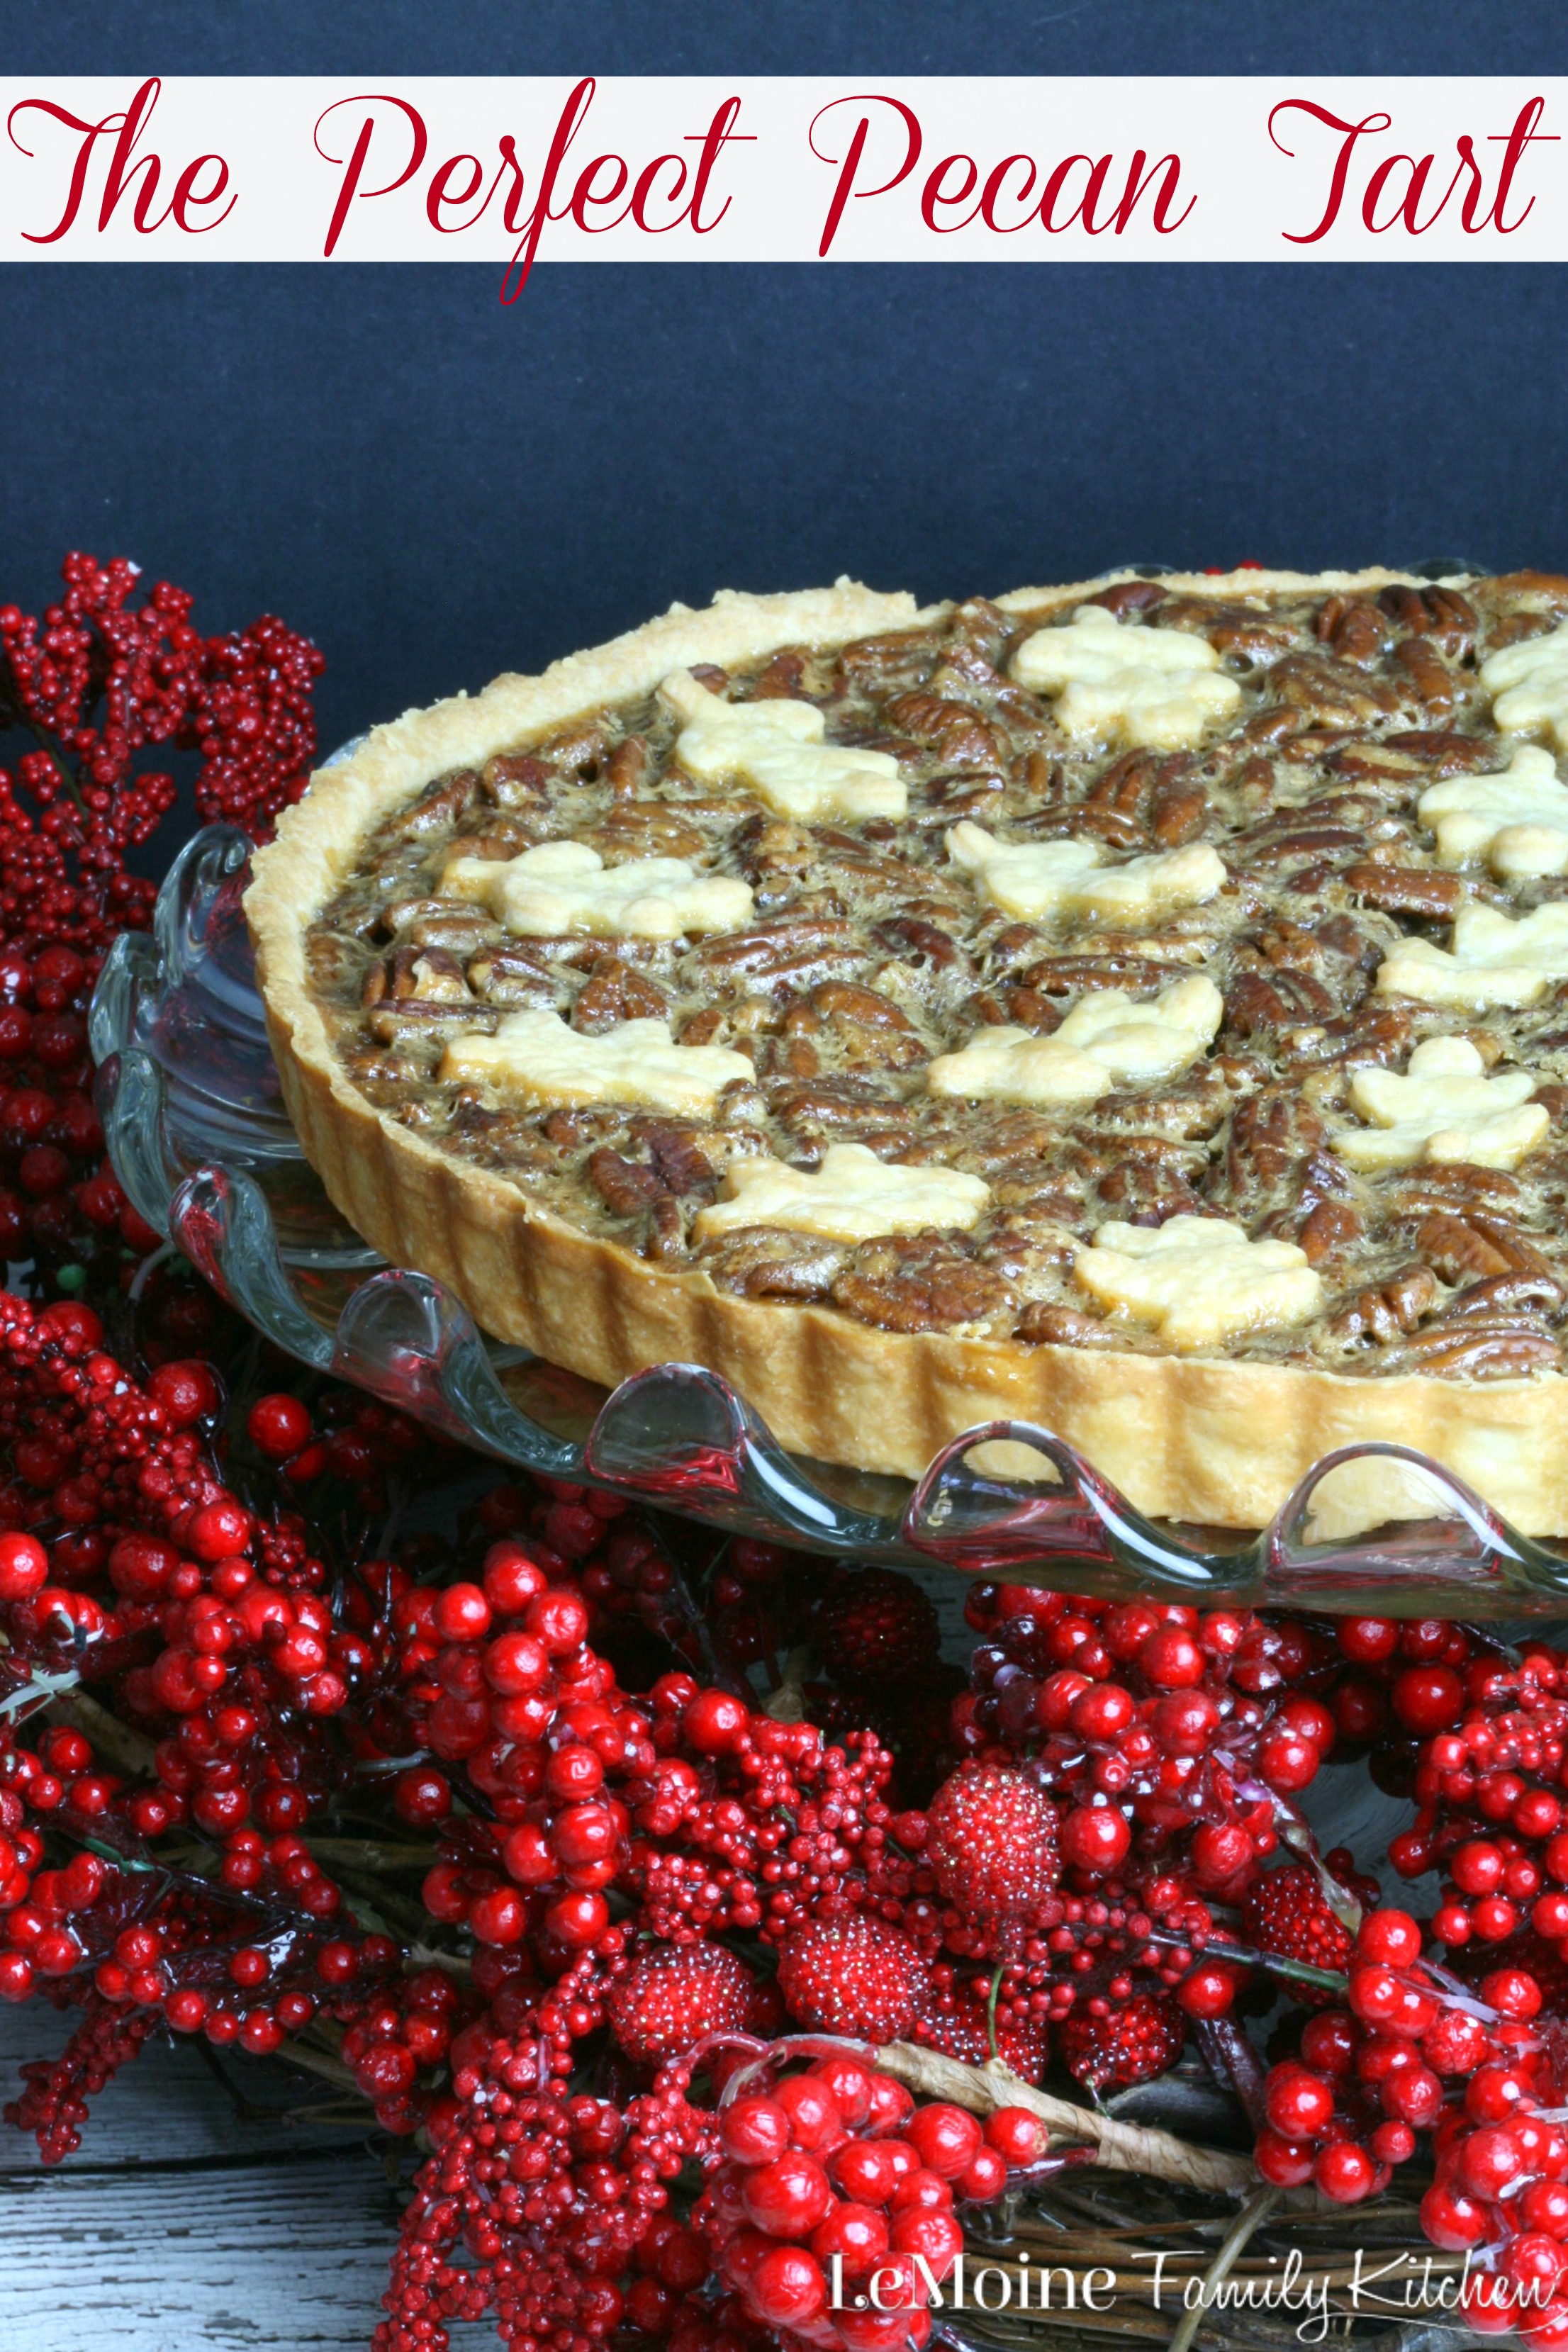 The Perfect Pecan Tart